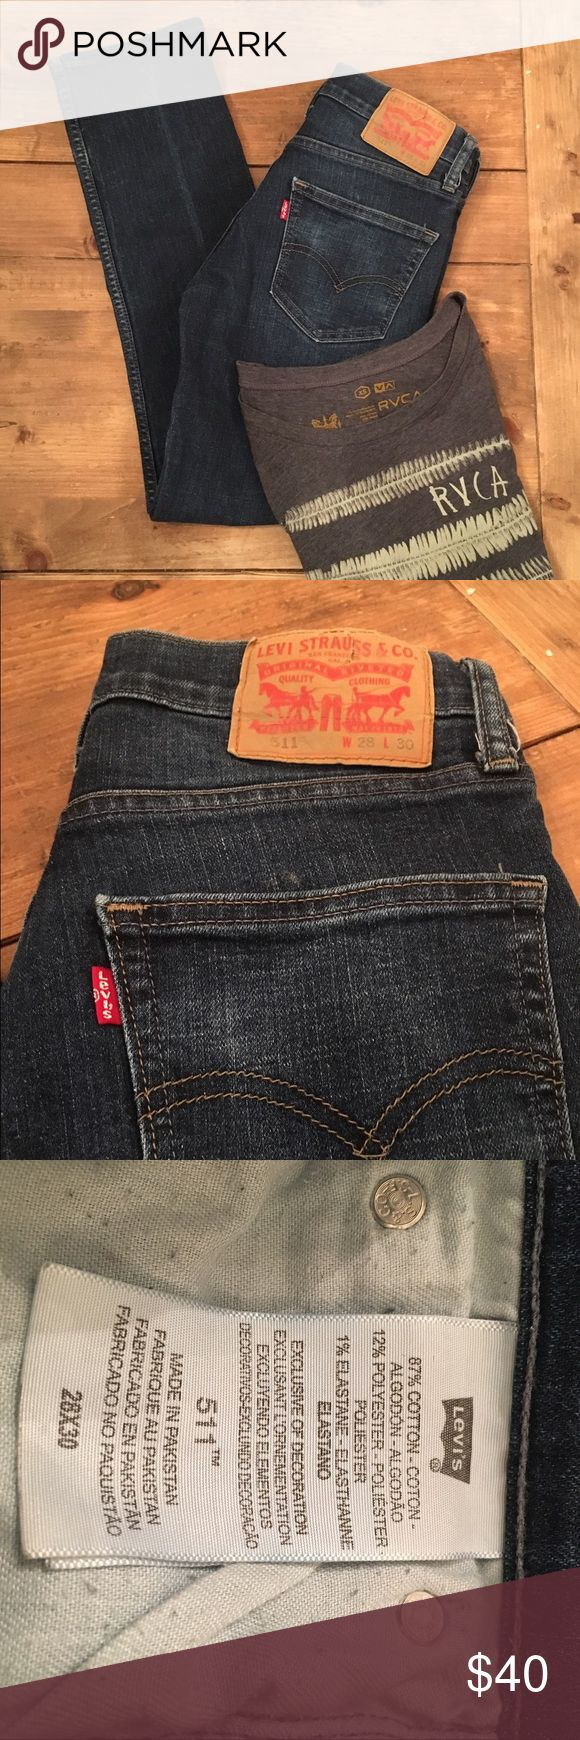 Men's Levi jeans Gently used Levi jeans in great condition. Dark wash slim fit (511). W28L30. Levi's Jeans Straight